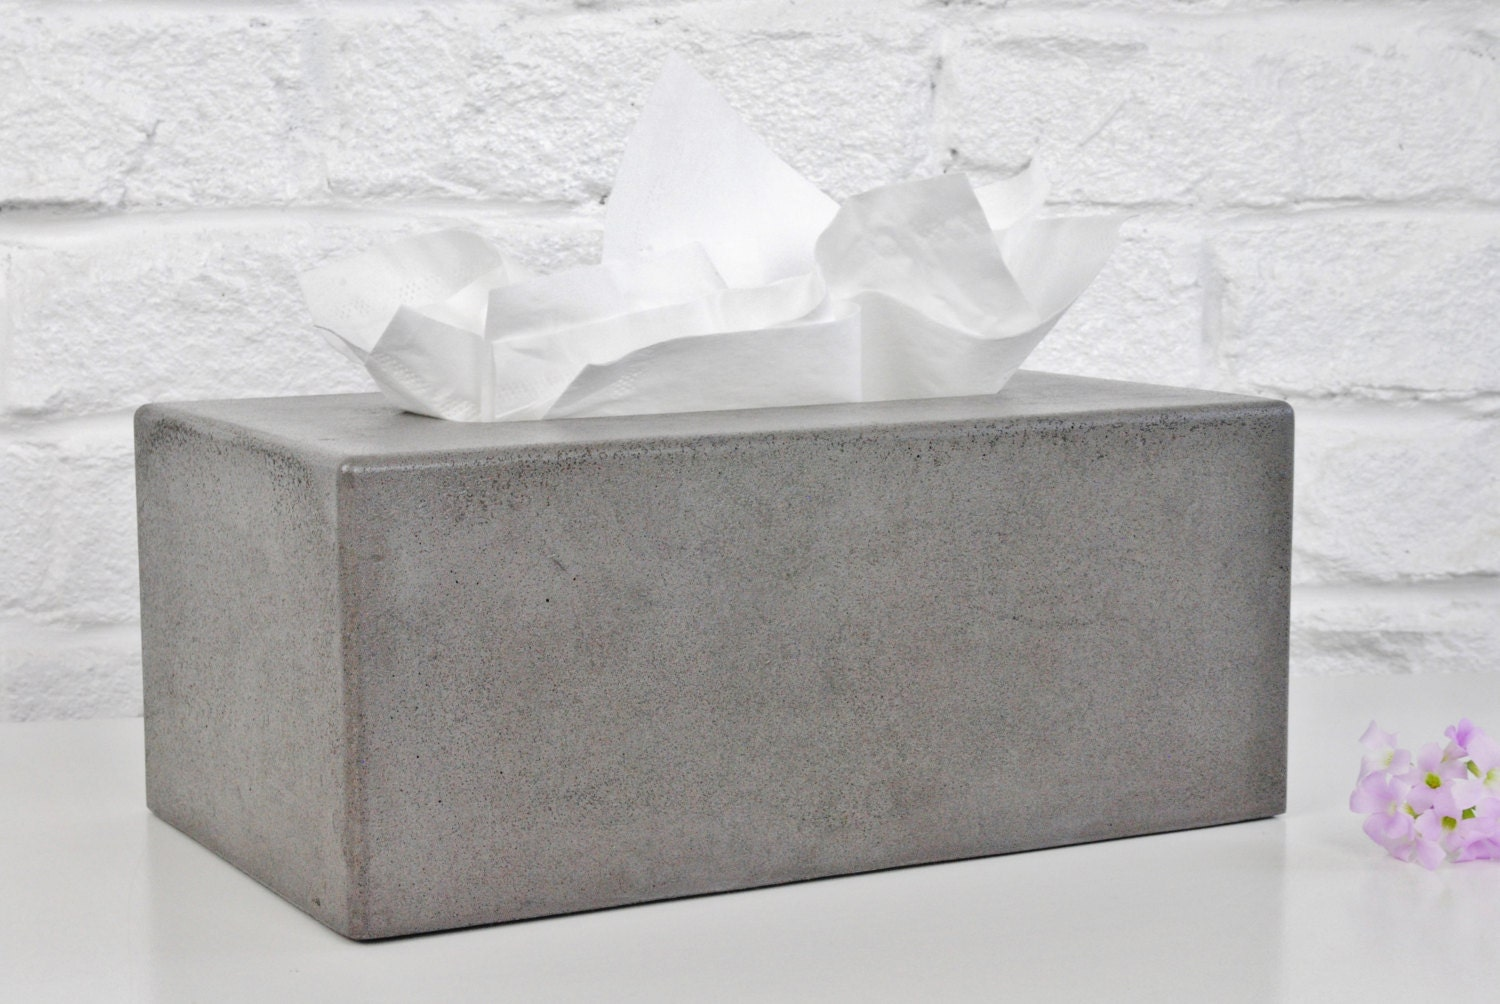 Concrete Tissue Box Cover Kleenex Tissue Box Cover